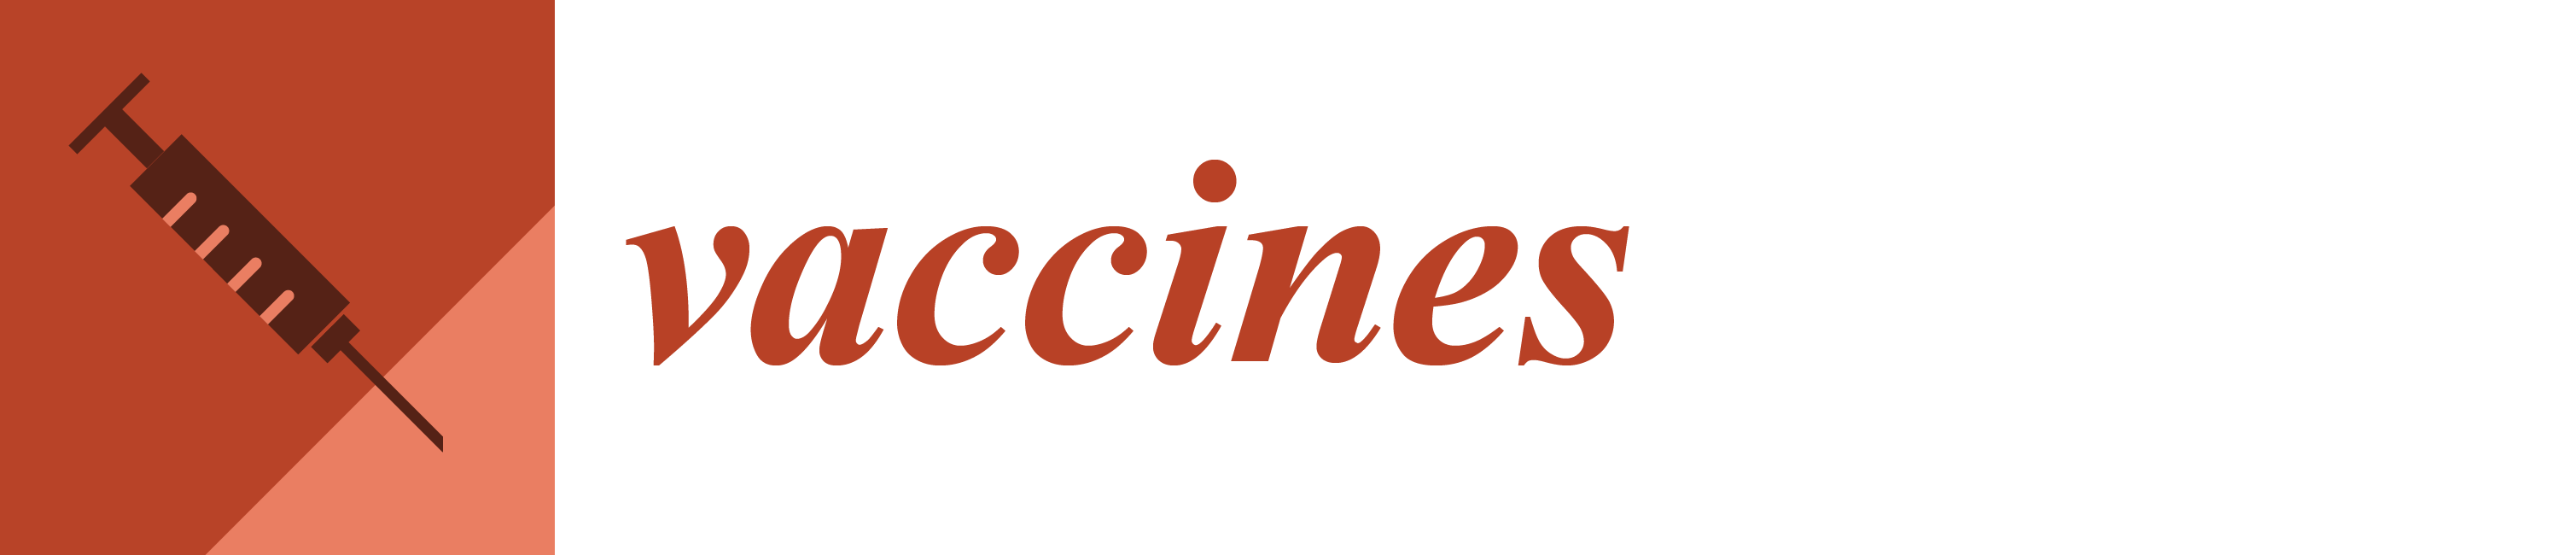 Vaccines | Free Full-Text | Epidemiological Studies to Support the